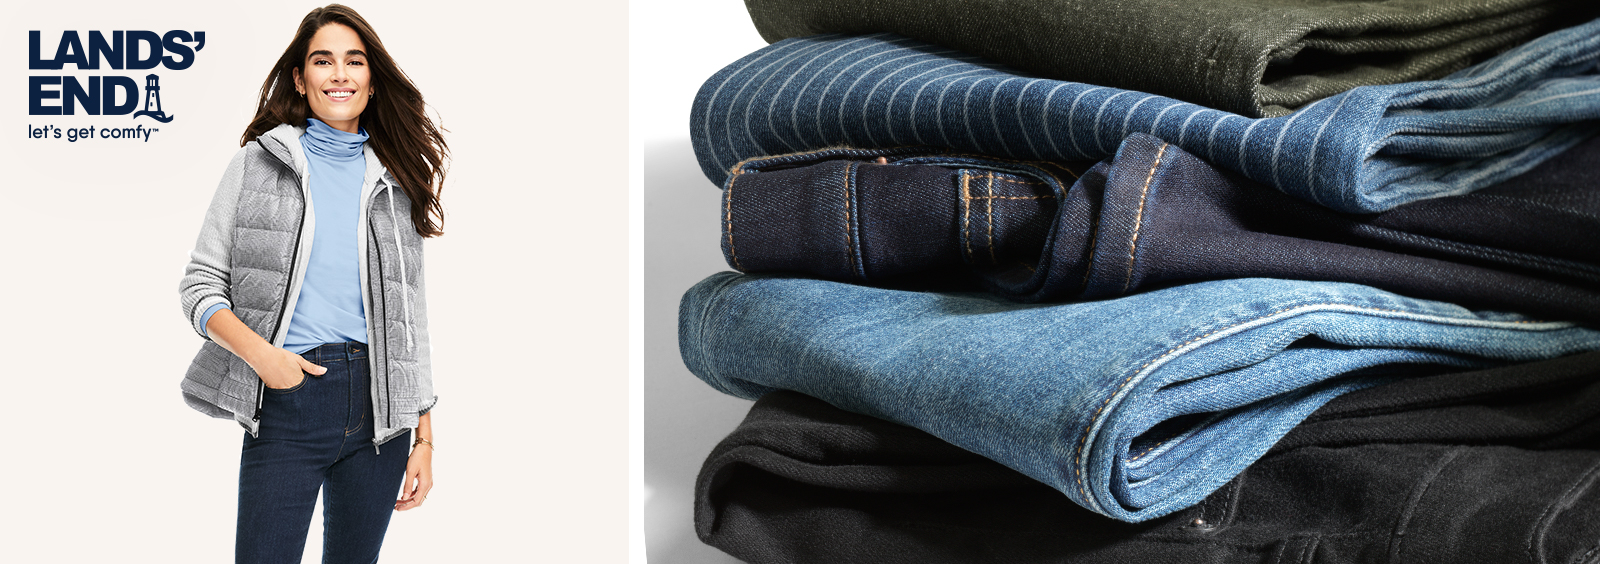 Tips for Shrinking Your Jeans